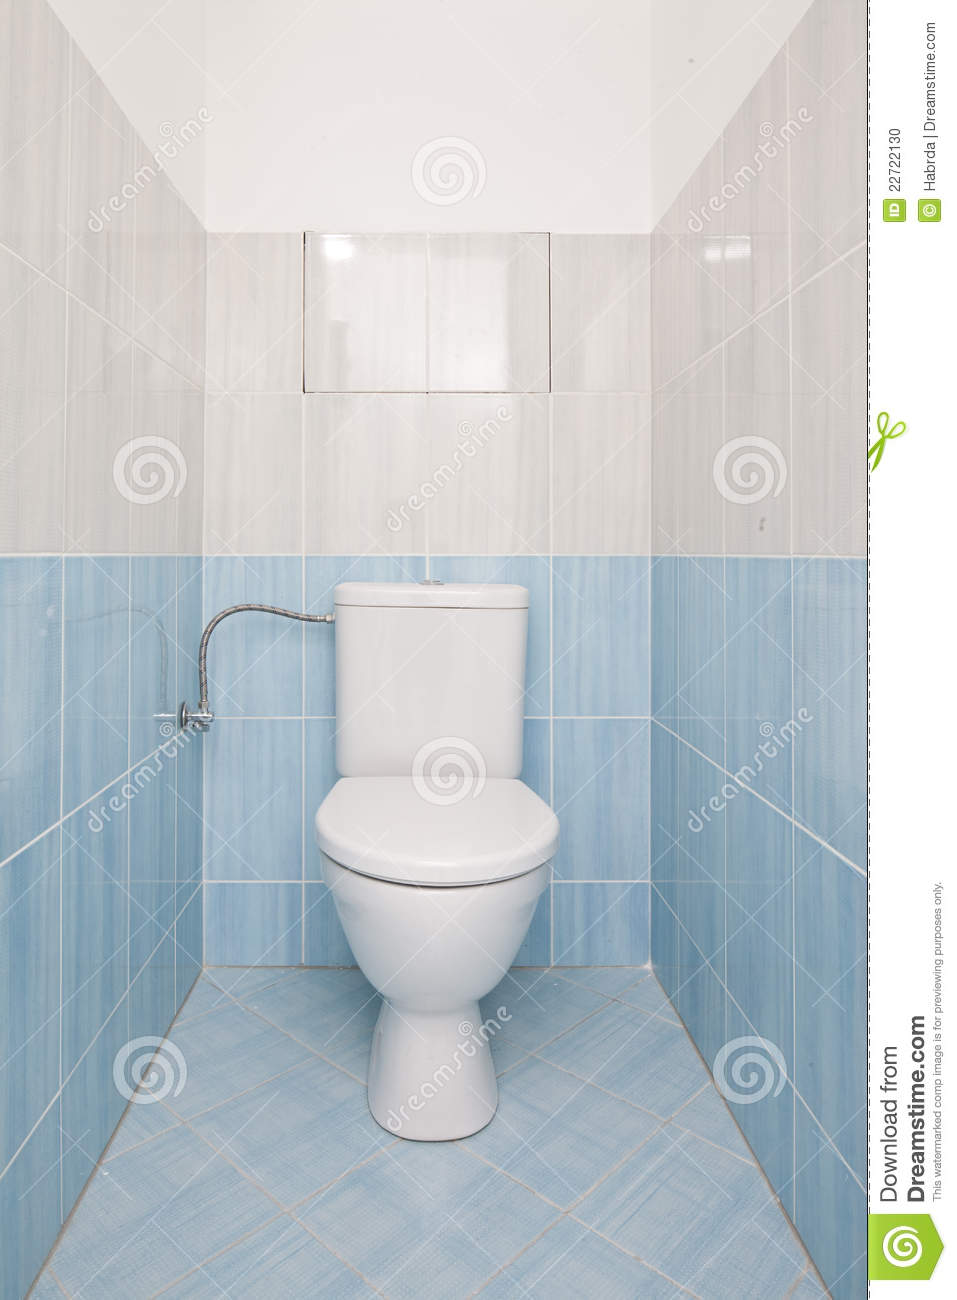 Blue Toilet Room Stock Photo Image Of House Tiled